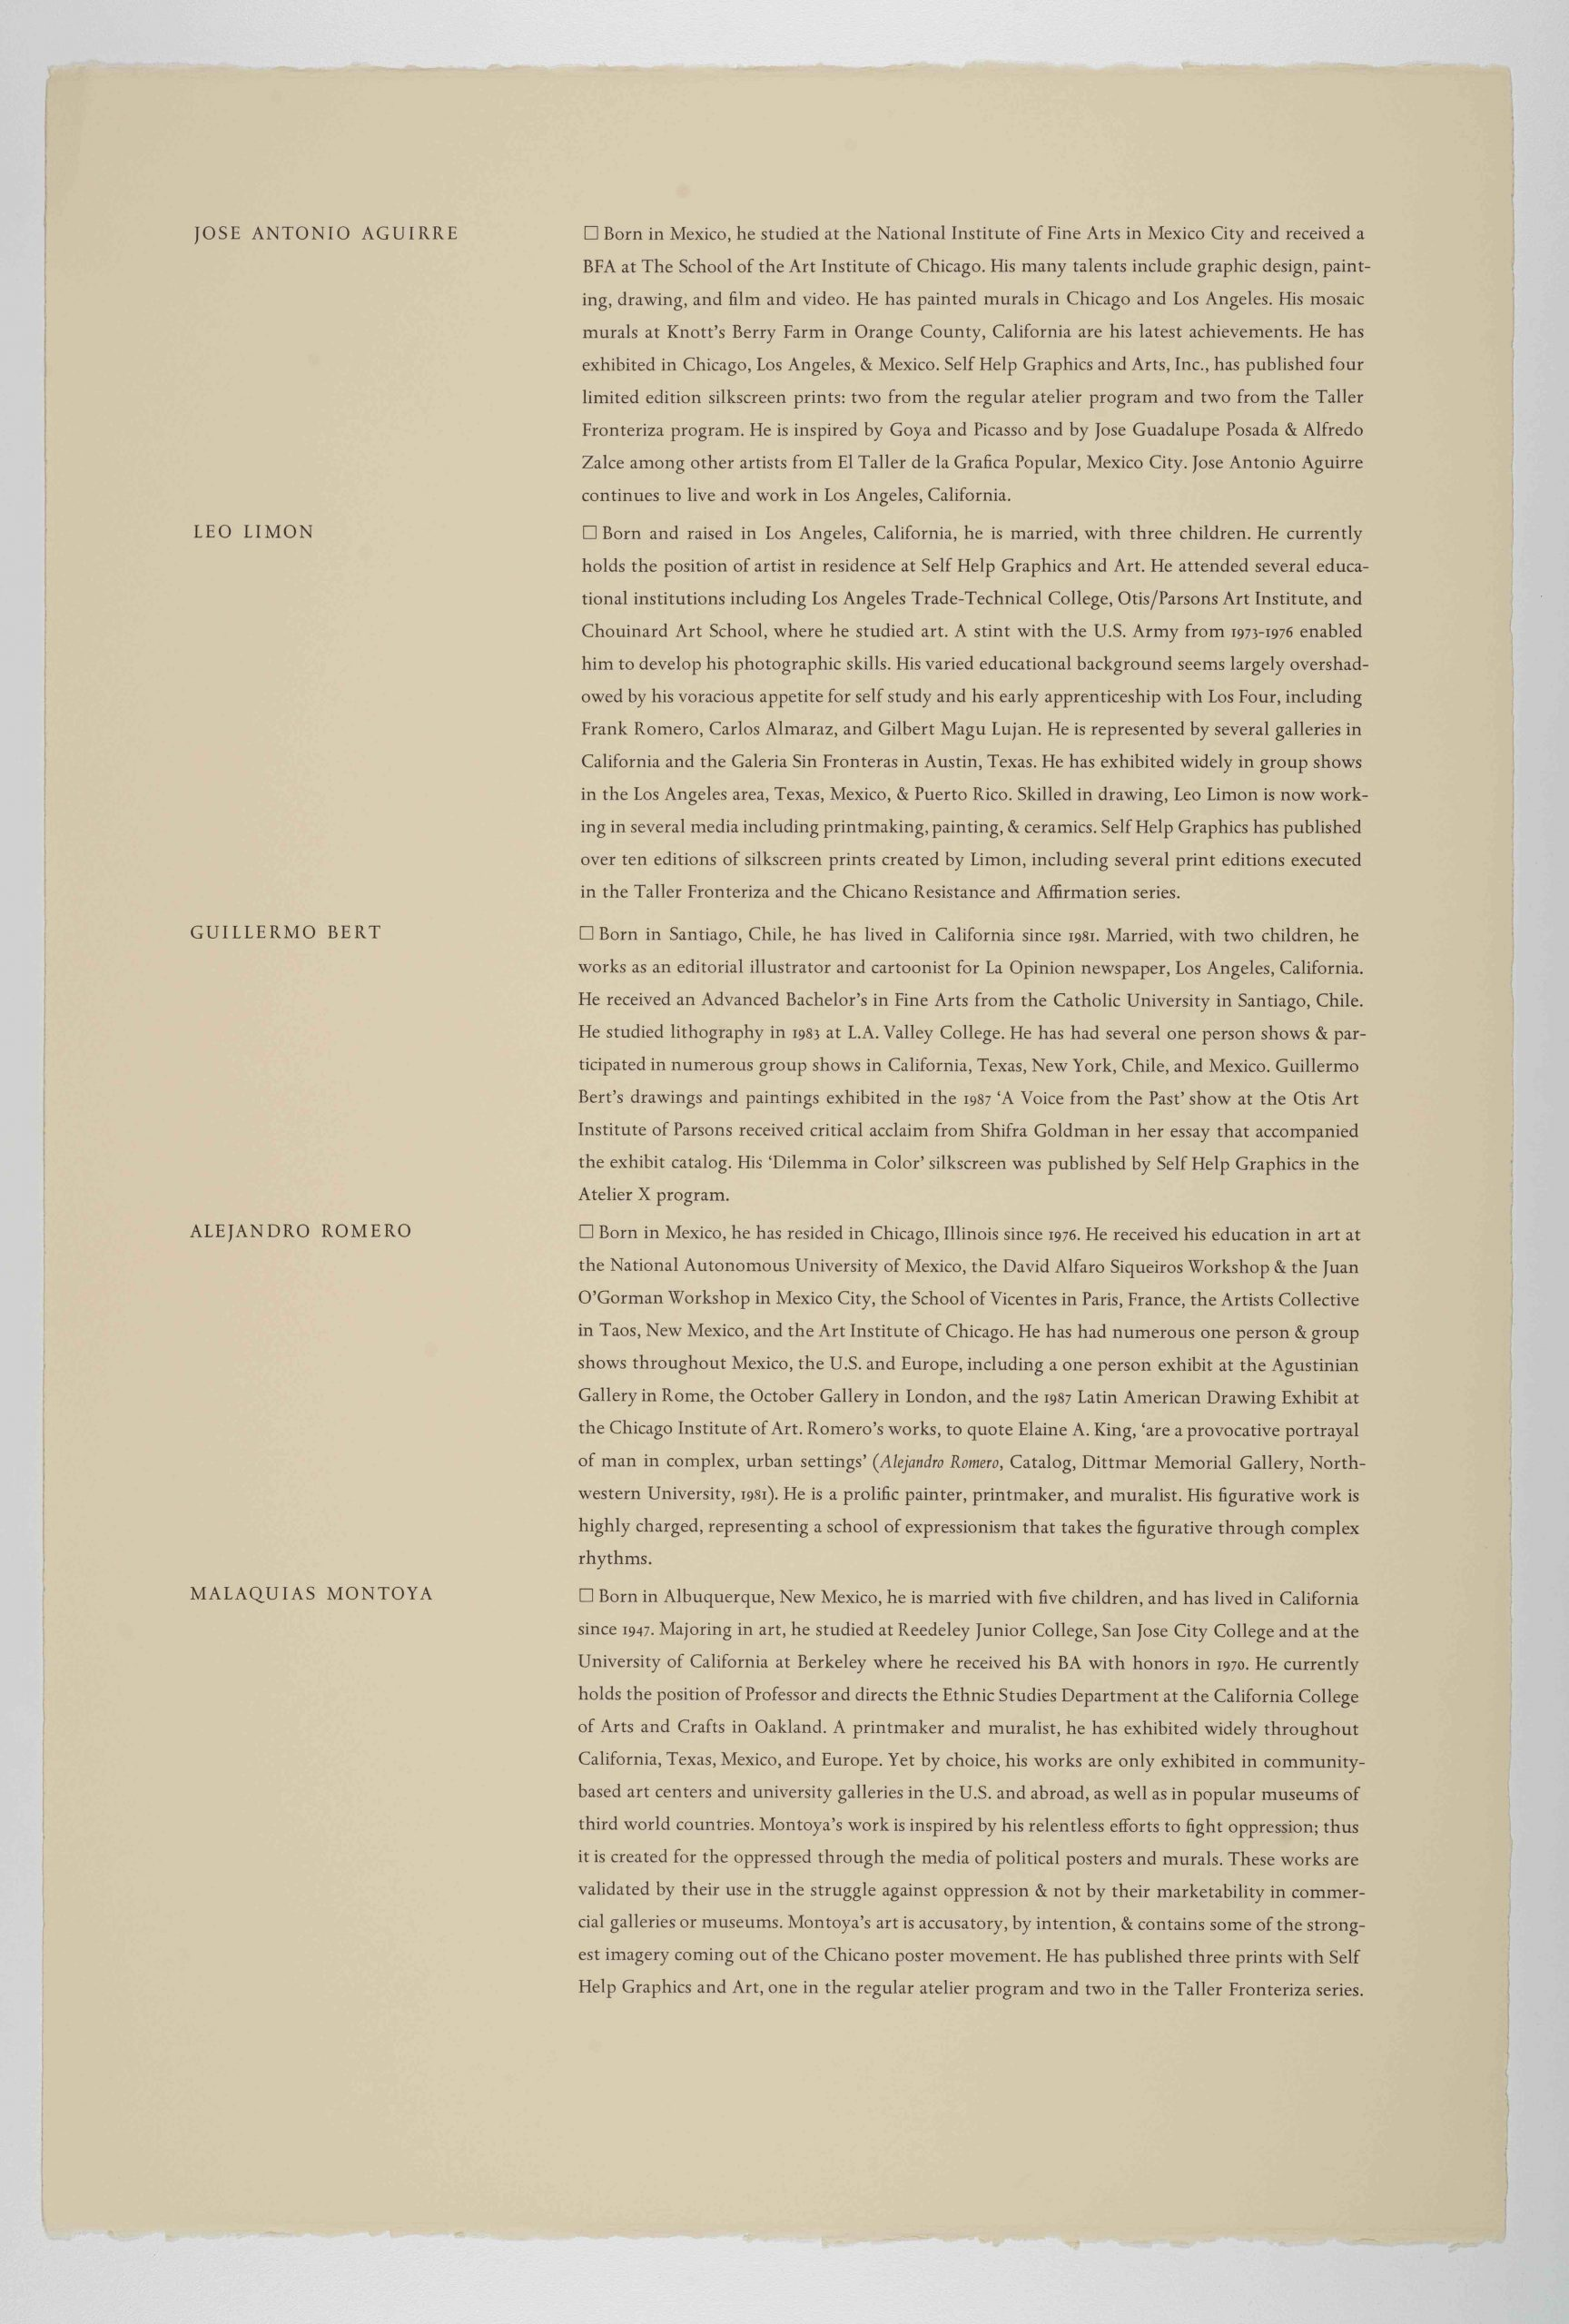 Descriptions of multiple artists, The New Immigration series, 1988